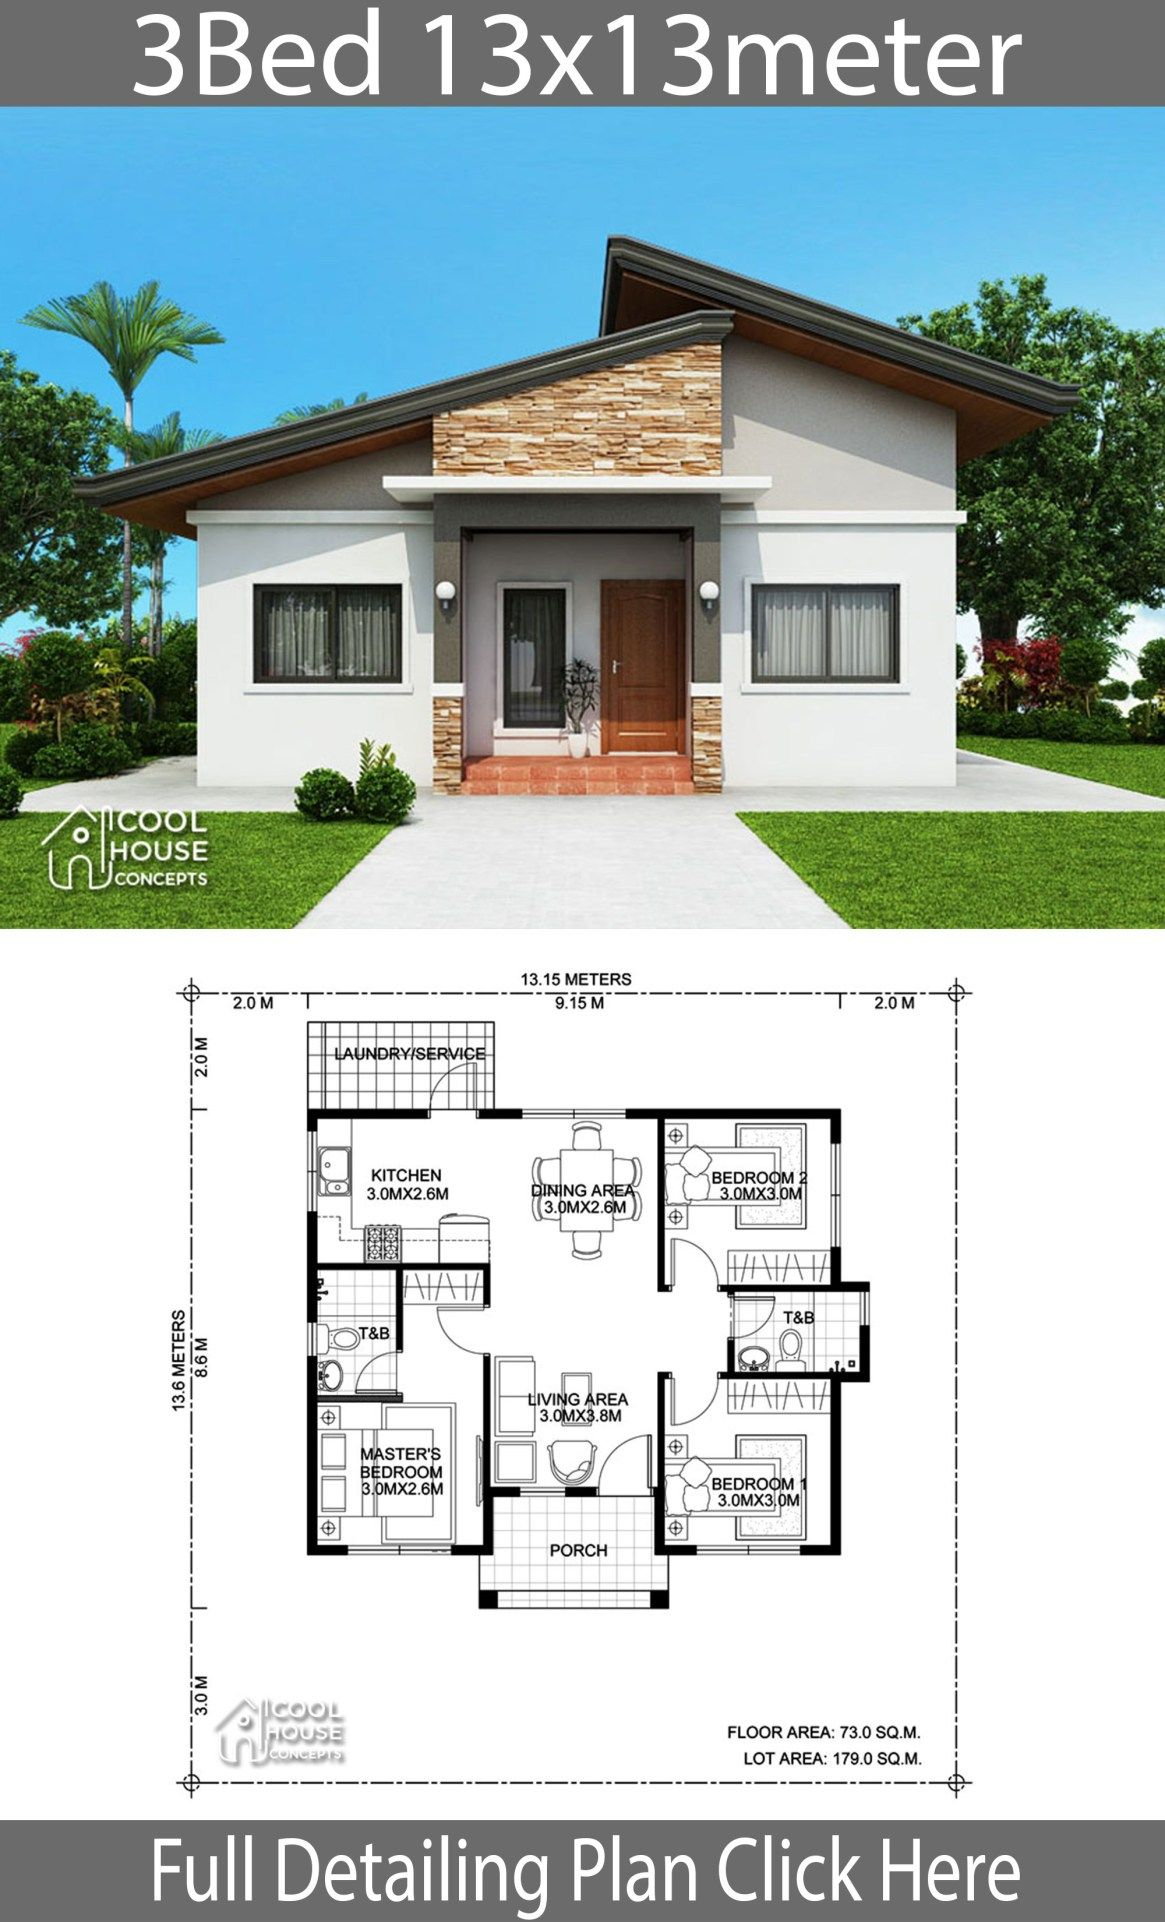 Home Design Plan 13x13m With 3 Bedrooms Home Design With Plansearch Modern Bungalow House Bungalow House Plans Bungalow House Design